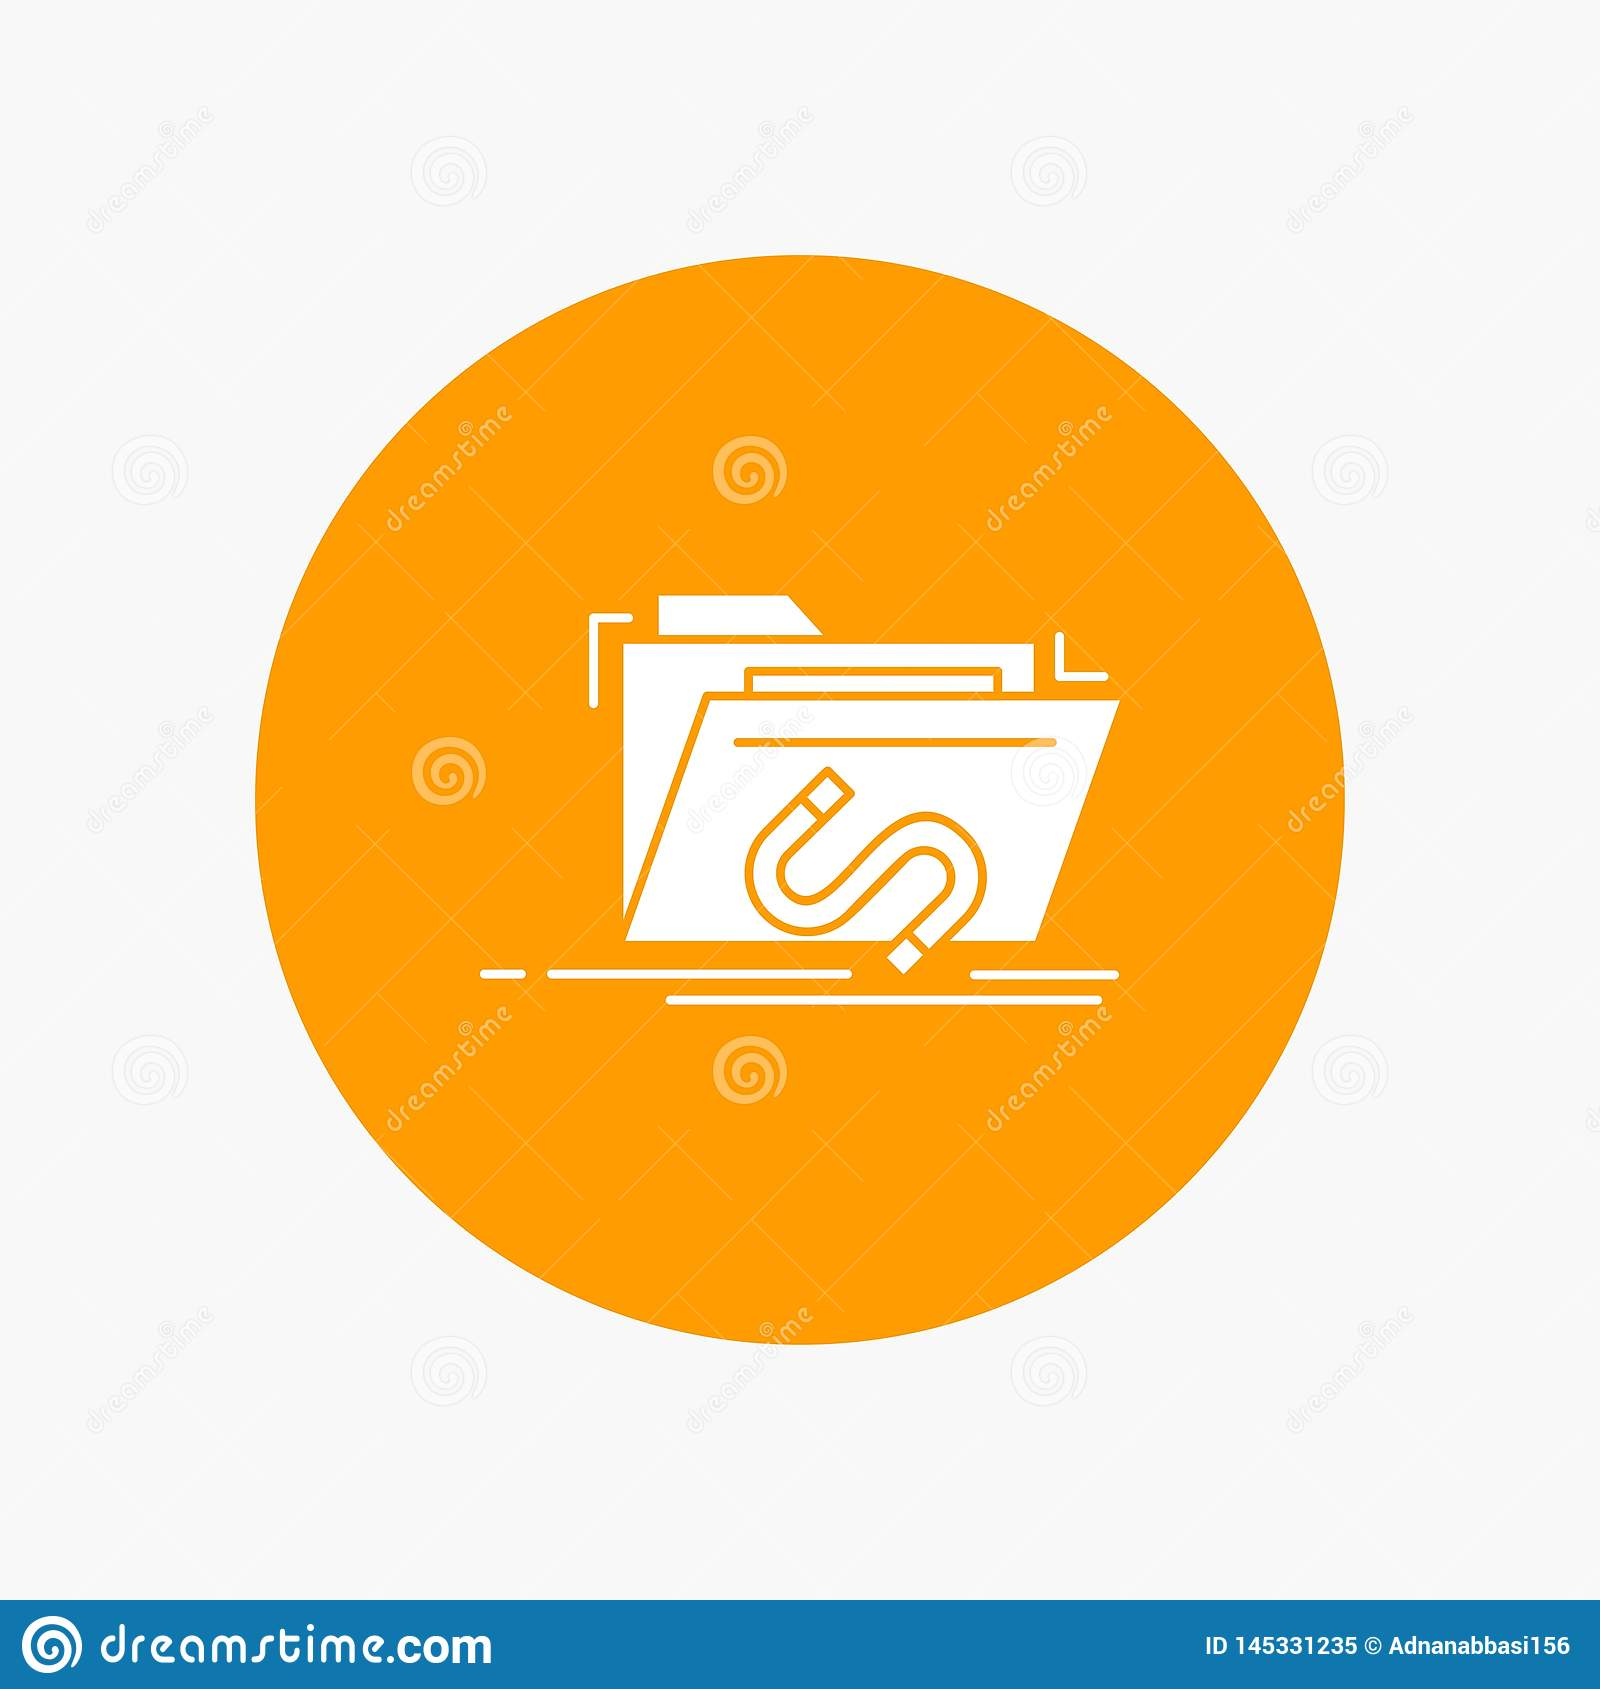 Backdoor, exploit, file, internet, software White Glyph Icon in Circle. Vector Button illustration